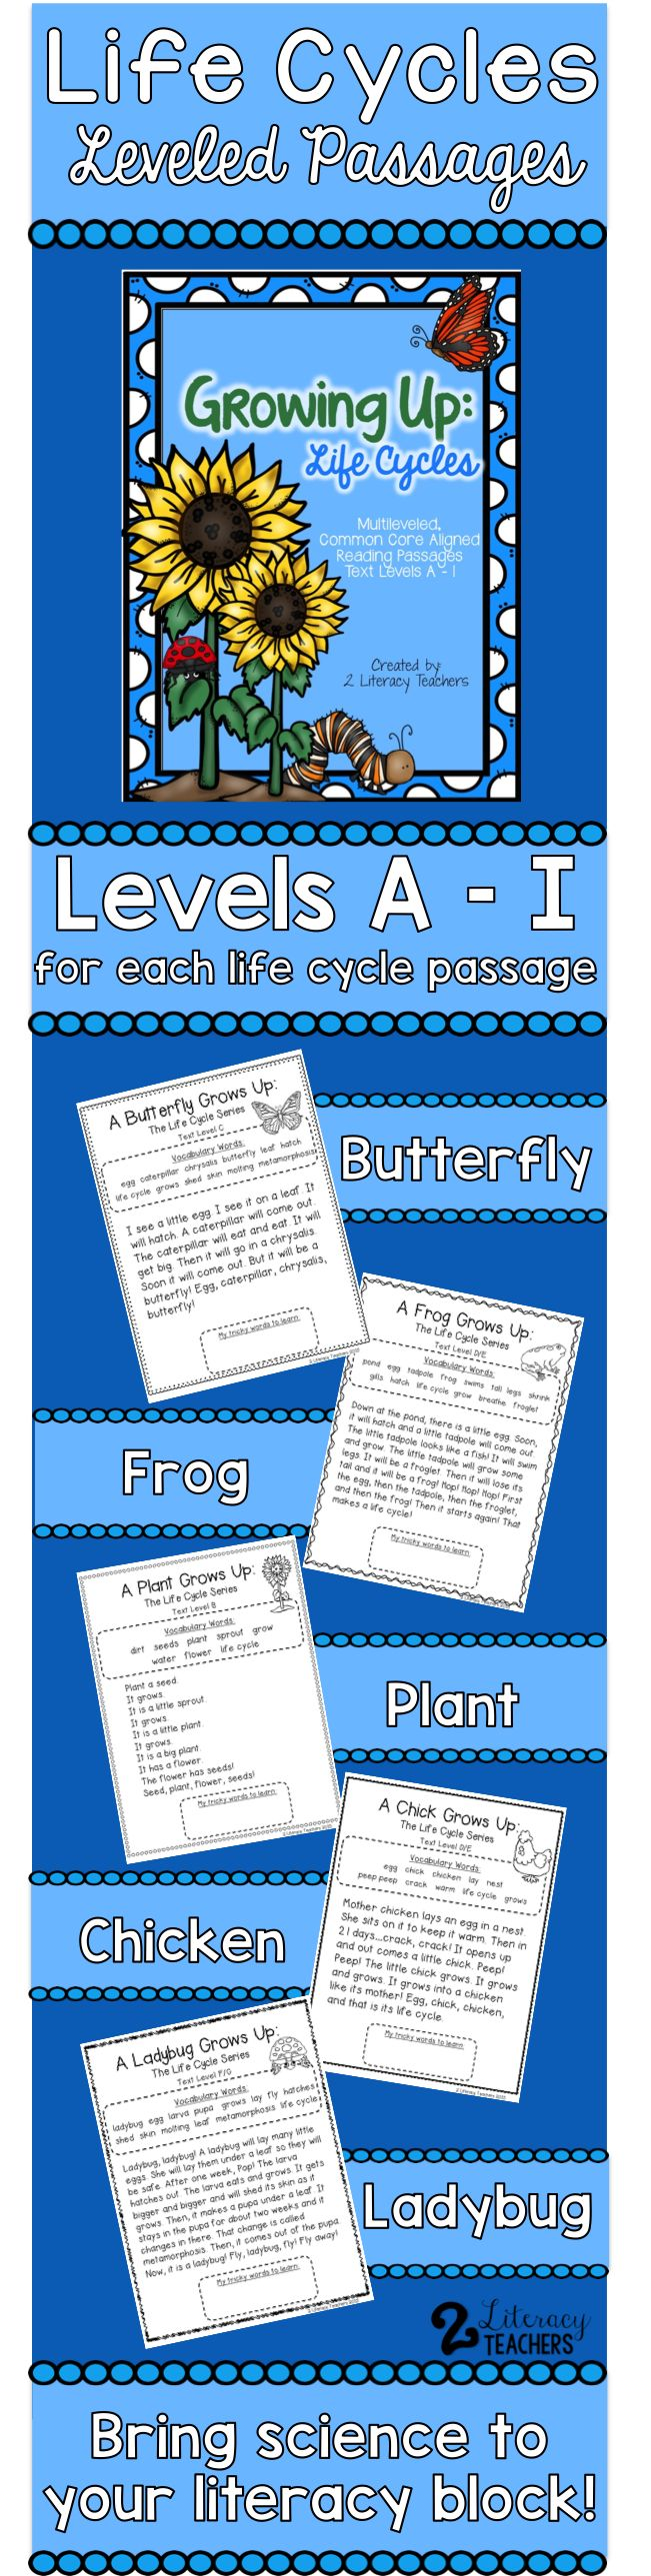 All about life cycles! Bring science to your literacy block with these leveled passages. Have your students learn about the life cycles of frogs, butterflies, plants, chickens and ladybugs. Each life cycle has 6 passages leveled A-I. Perfect for differentiation! Use whole group, guided reading, partner work, independent work or homework. Includes vocabulary games and completing the life cycle practice pages.